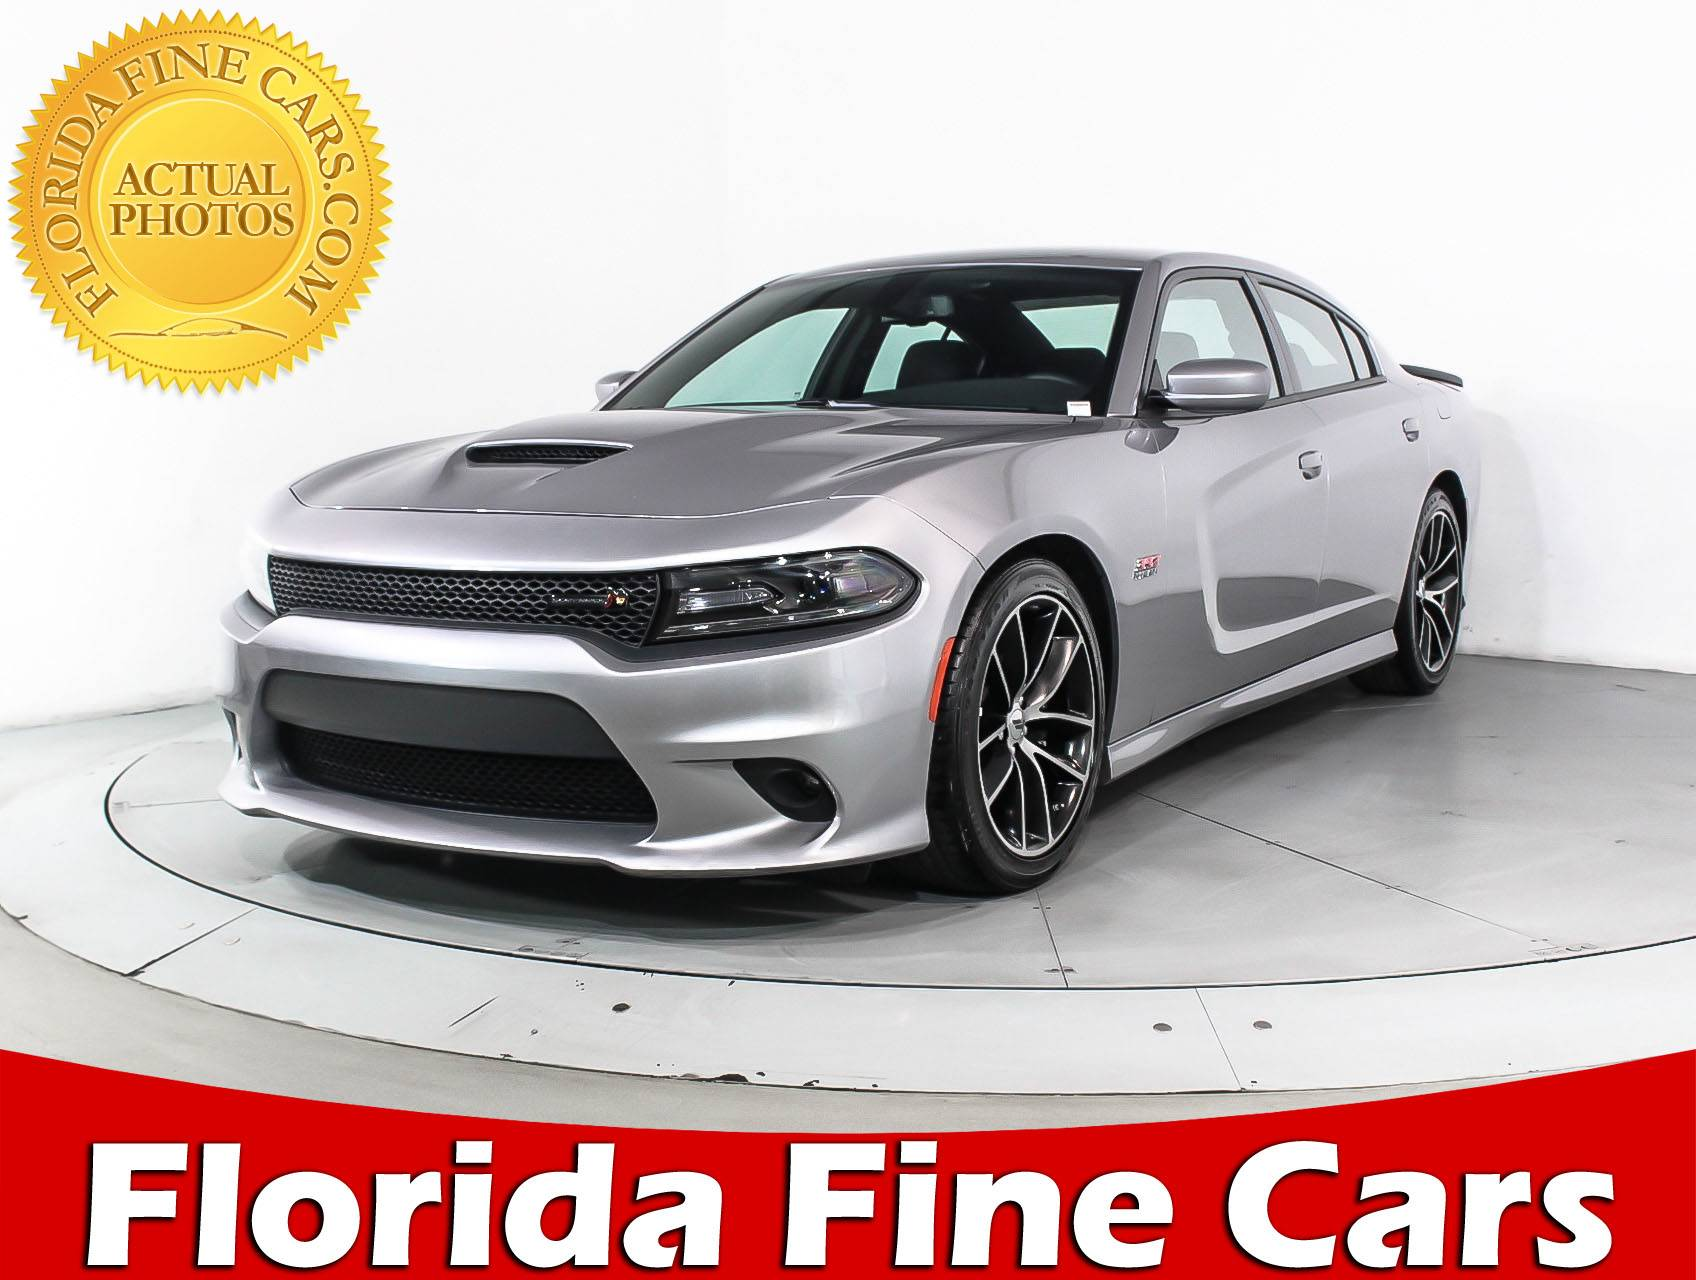 can car pin your at jeep is as looking central showroom ram chrysler dodge florida for dealers latest our dealership models the orlando south go to house